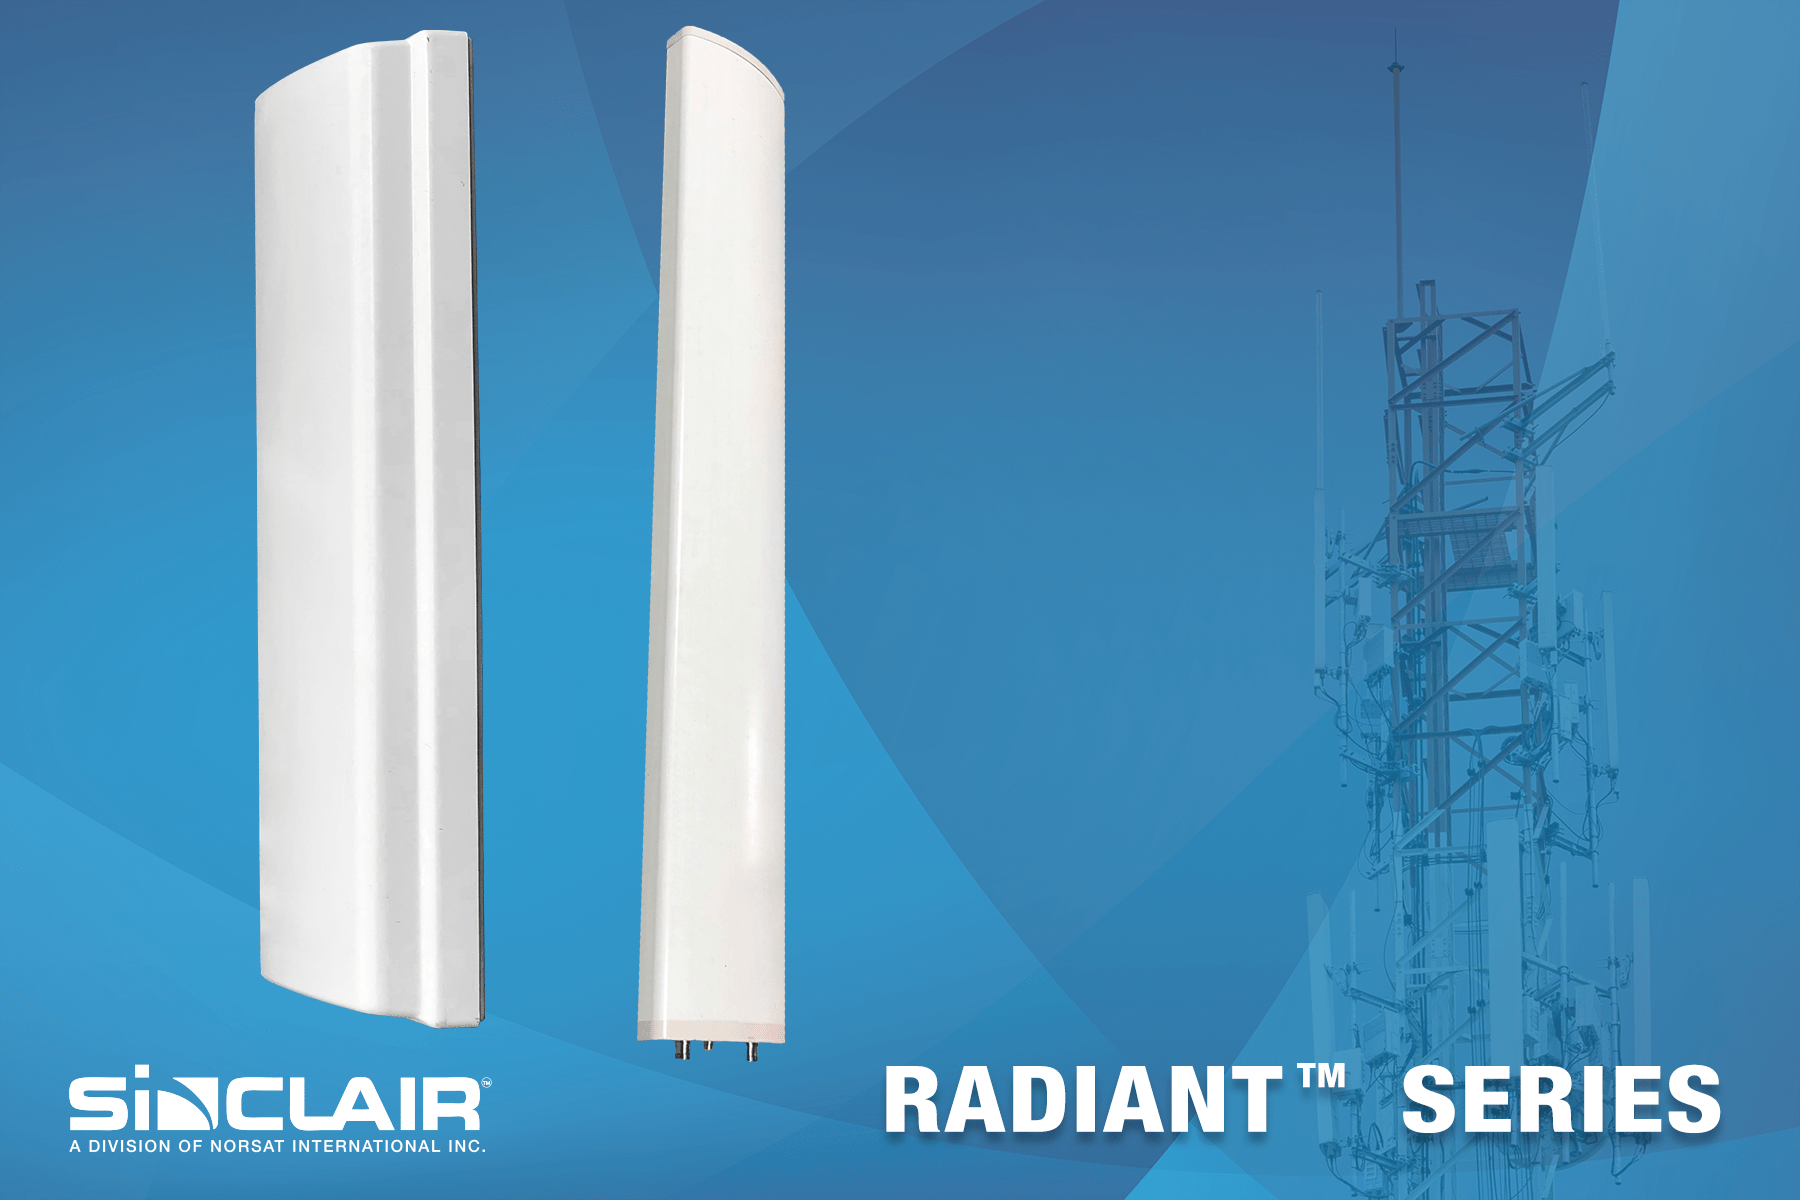 Sinclair Technologies Launches the Radiant Series of Rugged Panel Antennas to Address the LTE Market